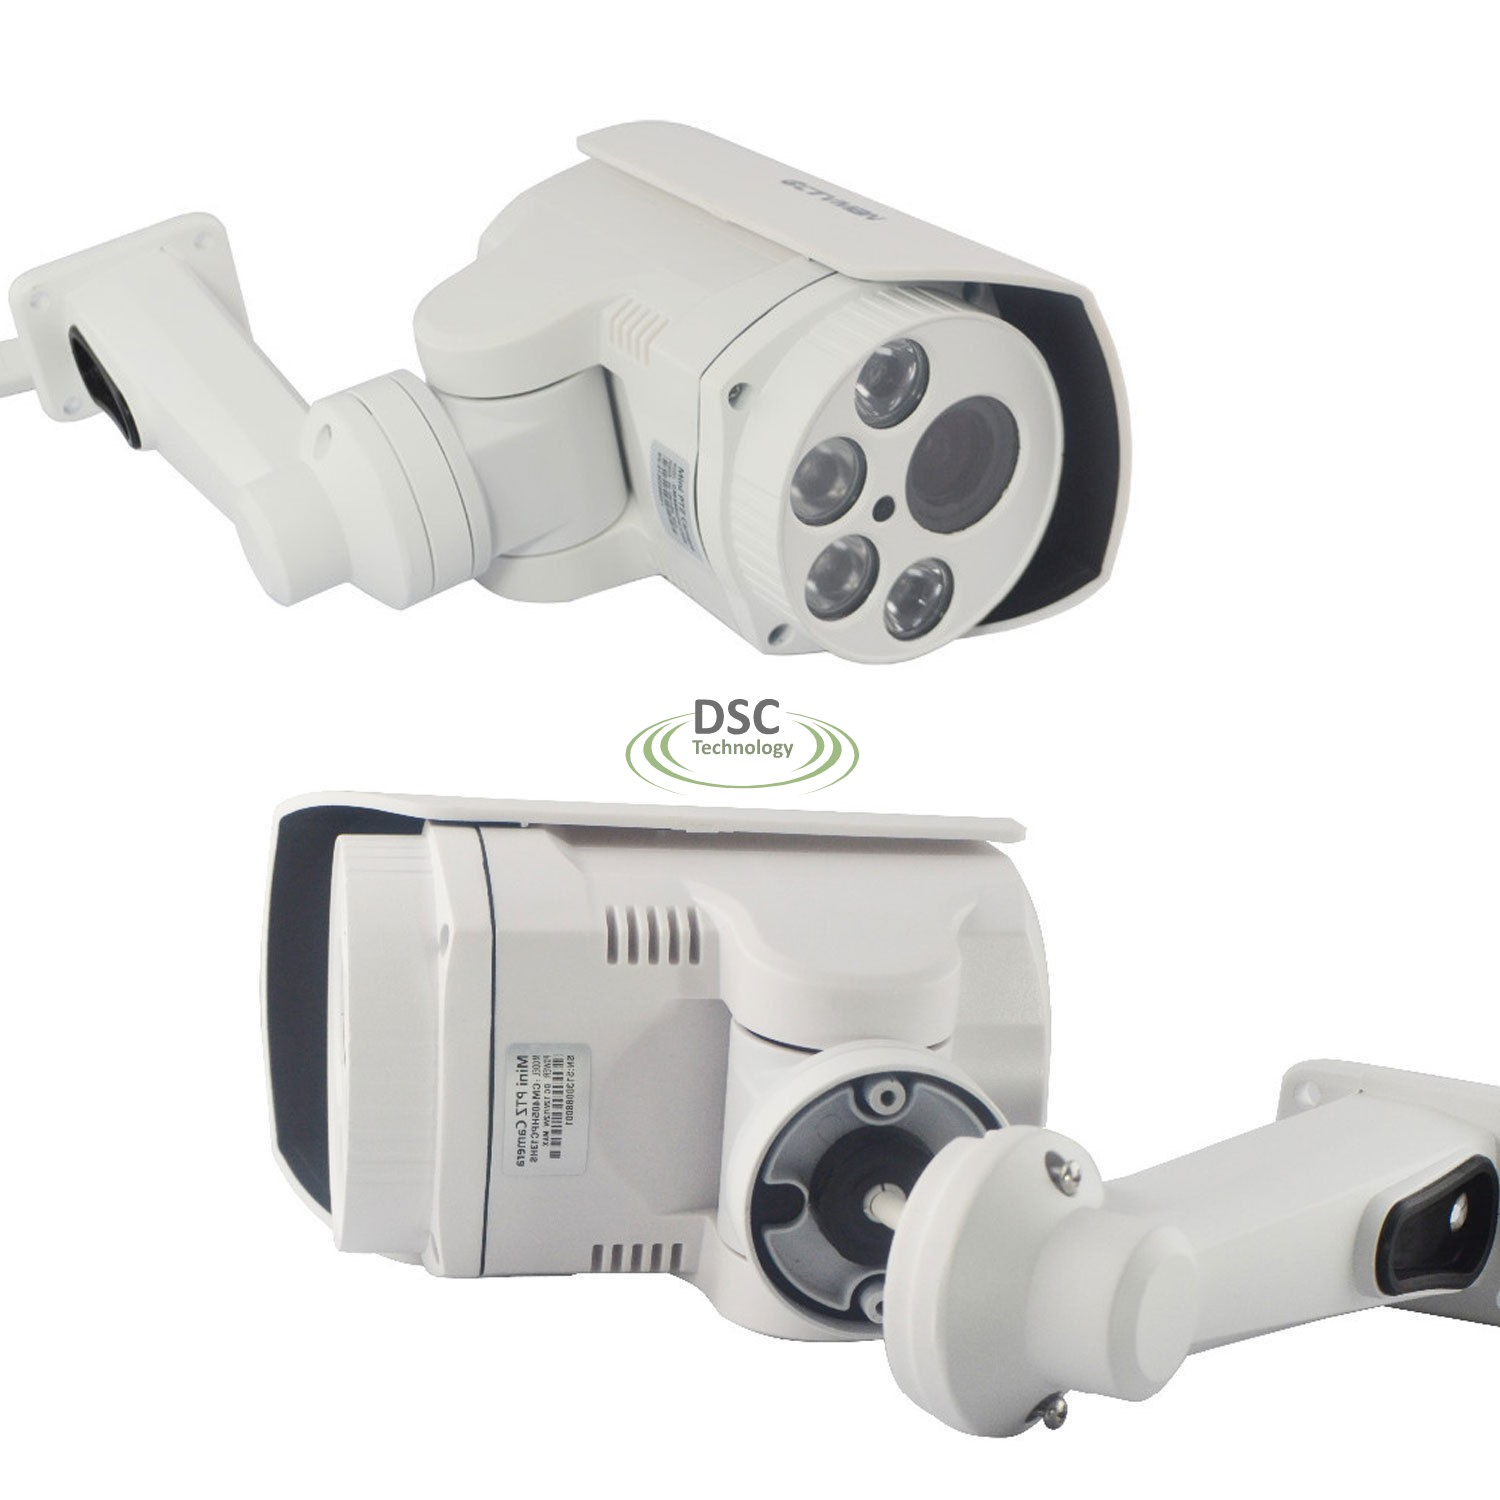 Rotary 1080p Outdoor Bullet Ptz Ip Camera With Poe Card